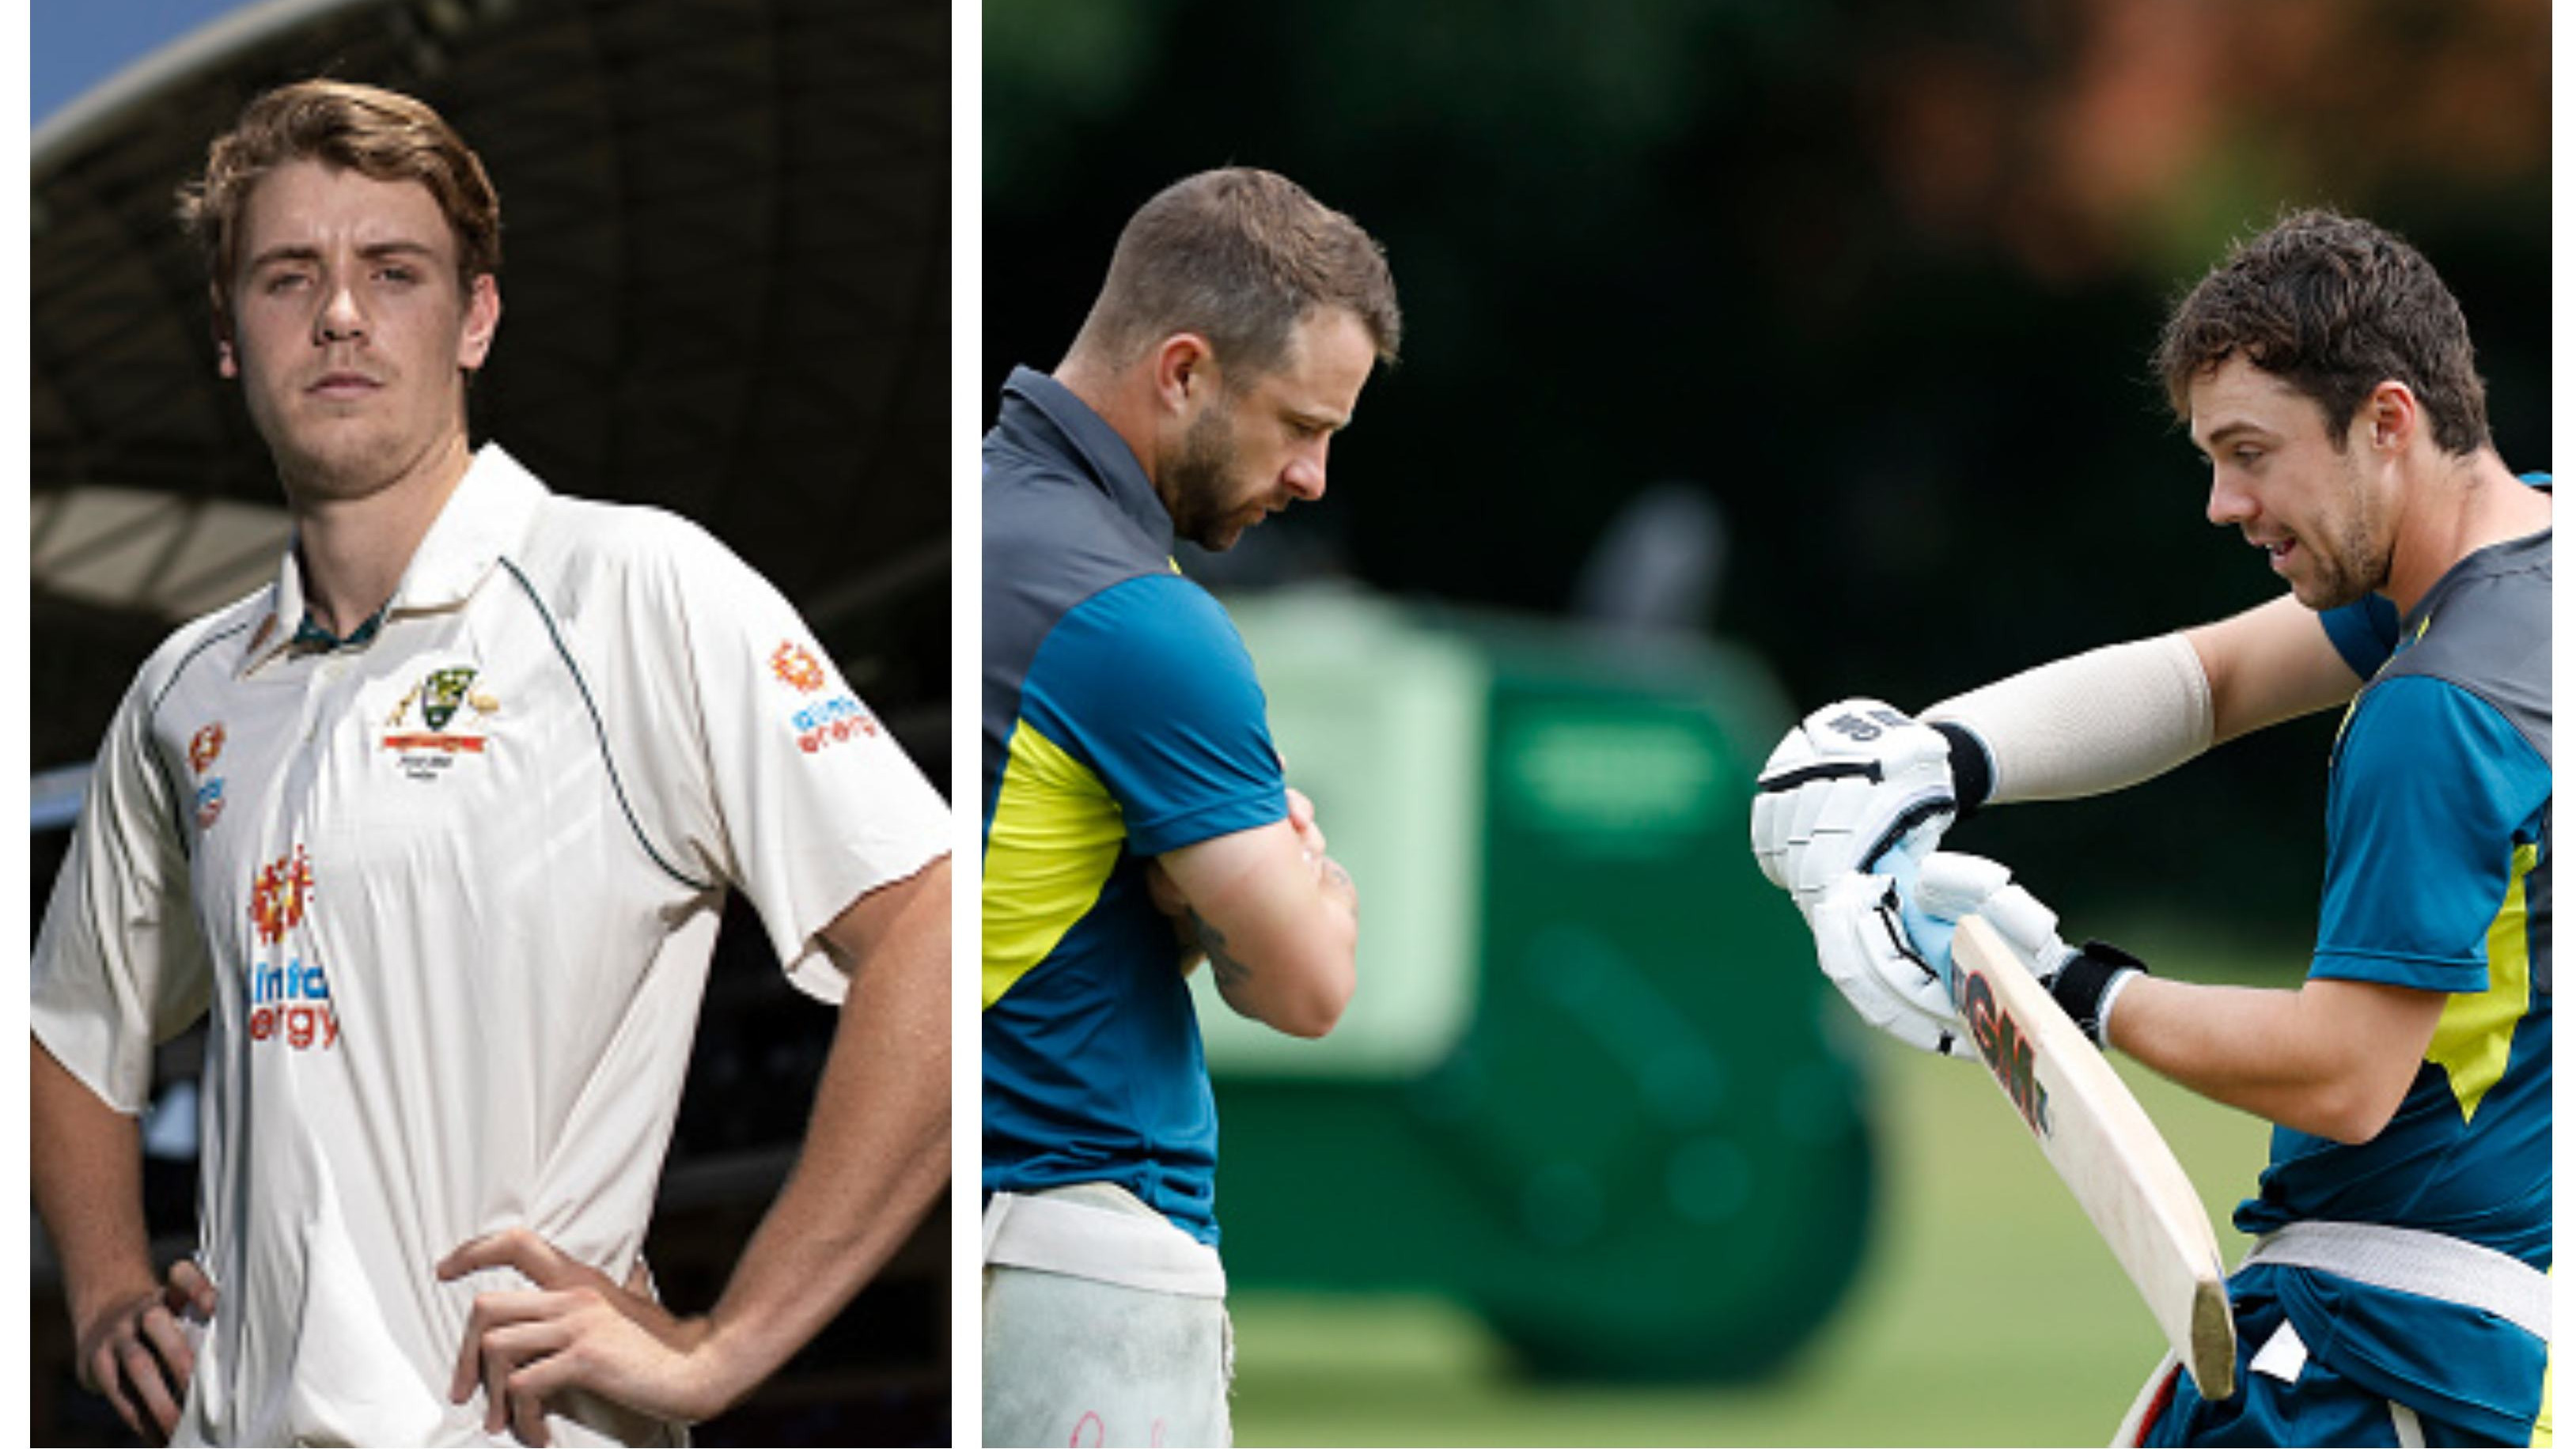 Cameron Green bags maiden Cricket Australia central contract as Travis Head, Matthew Wade miss out